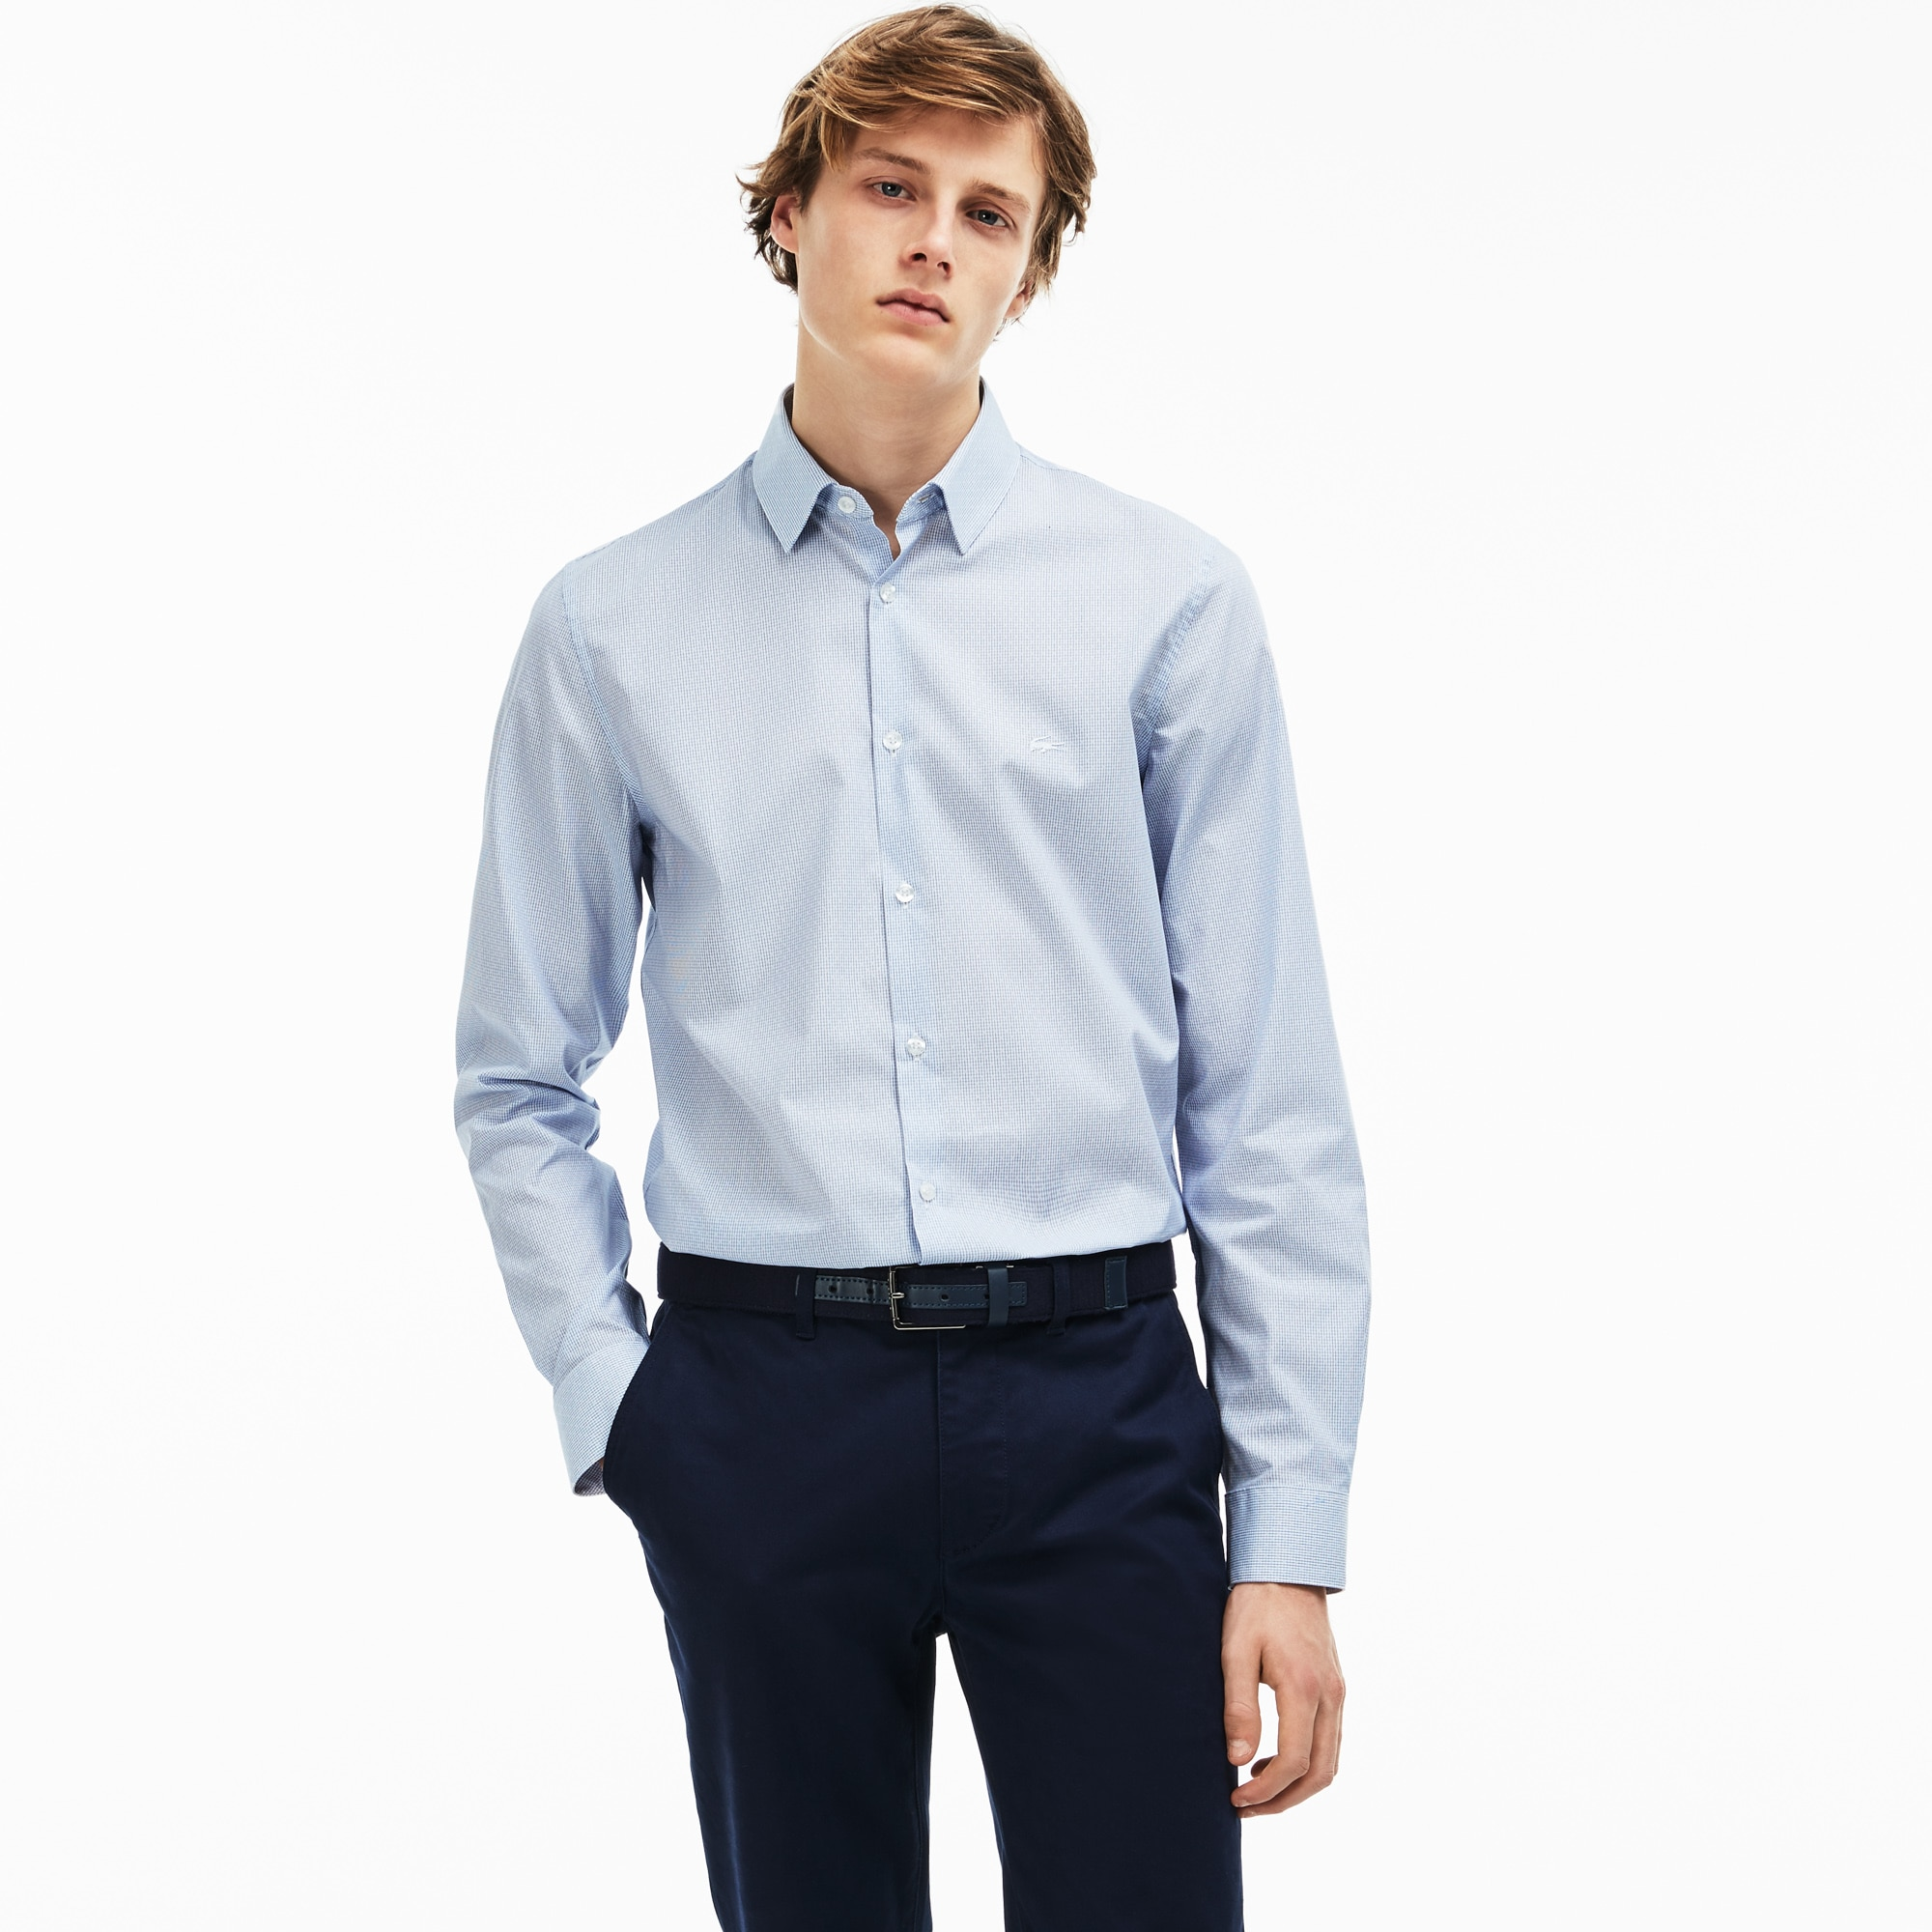 Men's Slim Fit Jacquard Poplin Shirt